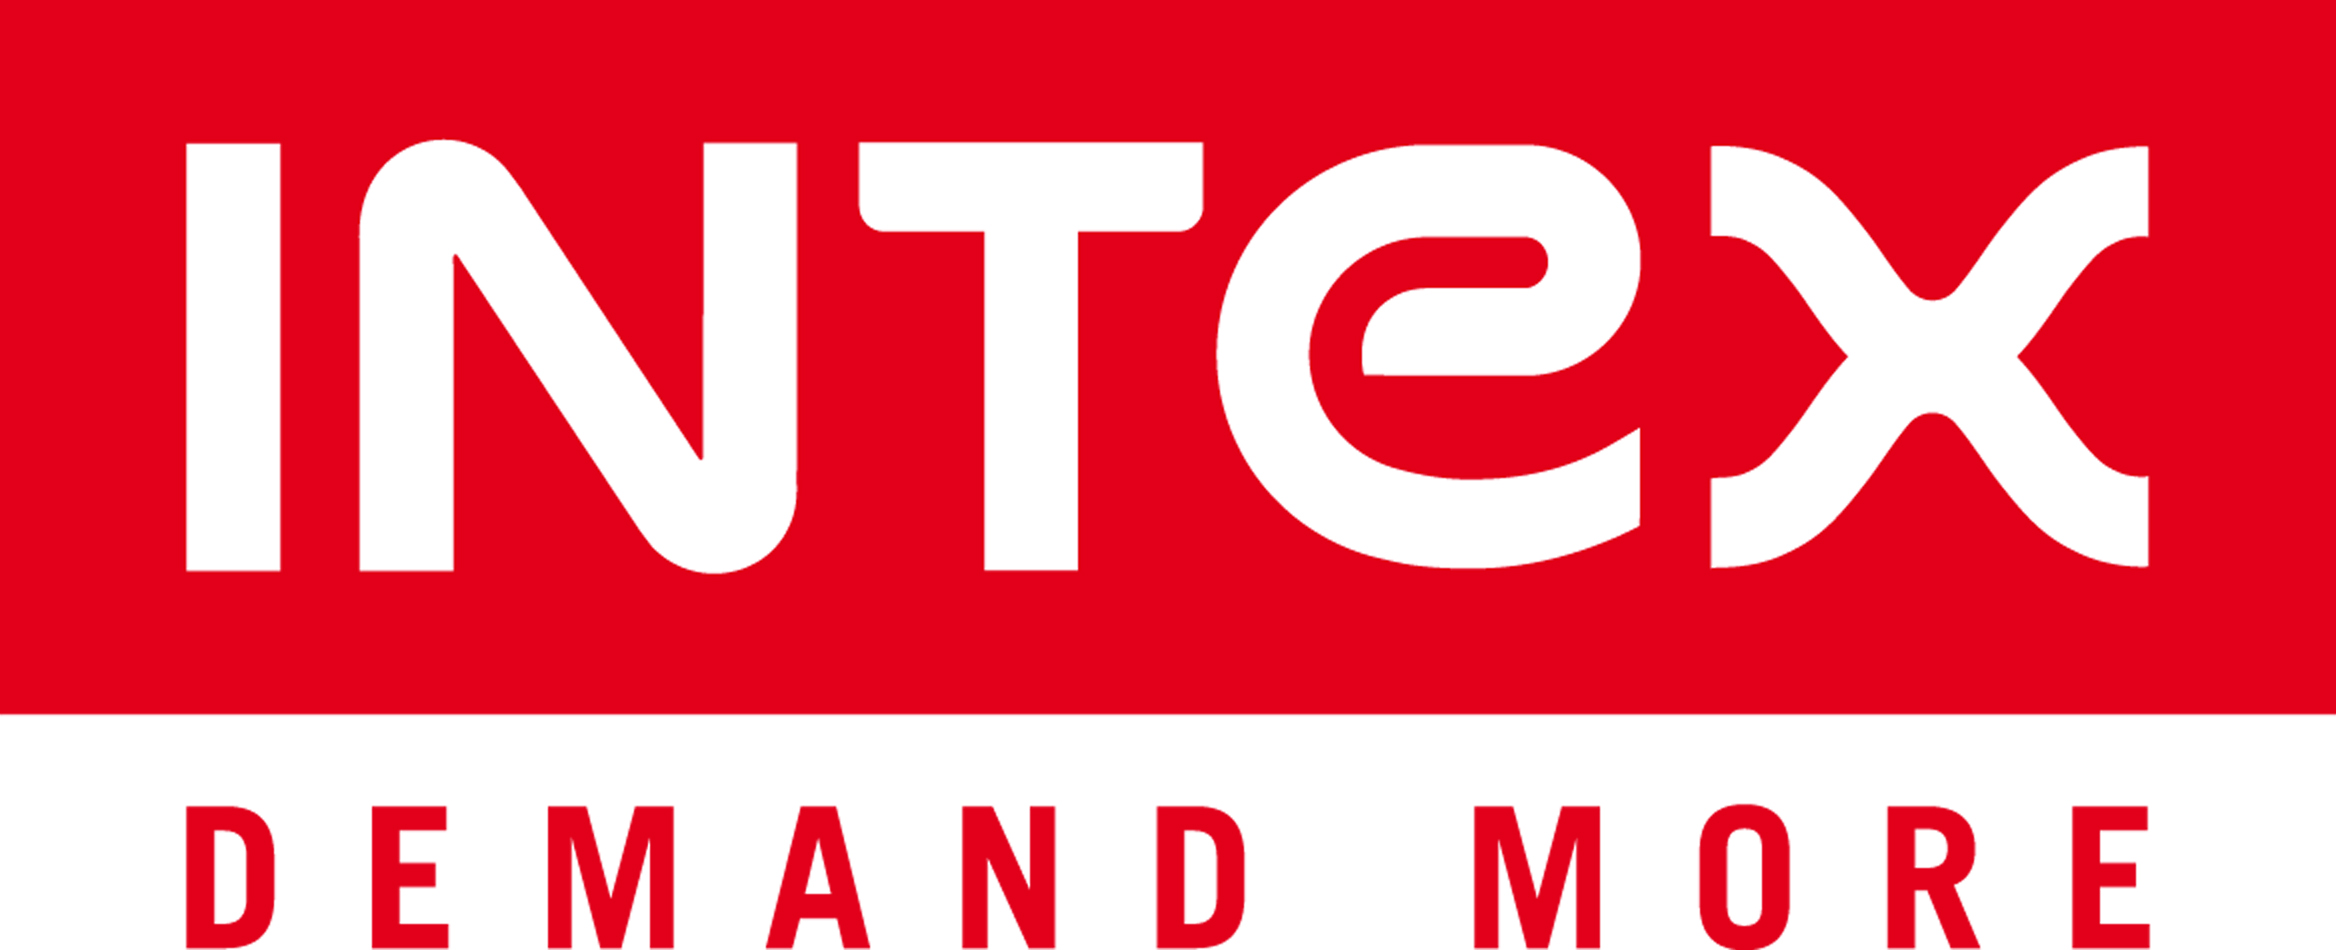 Intex with demand more